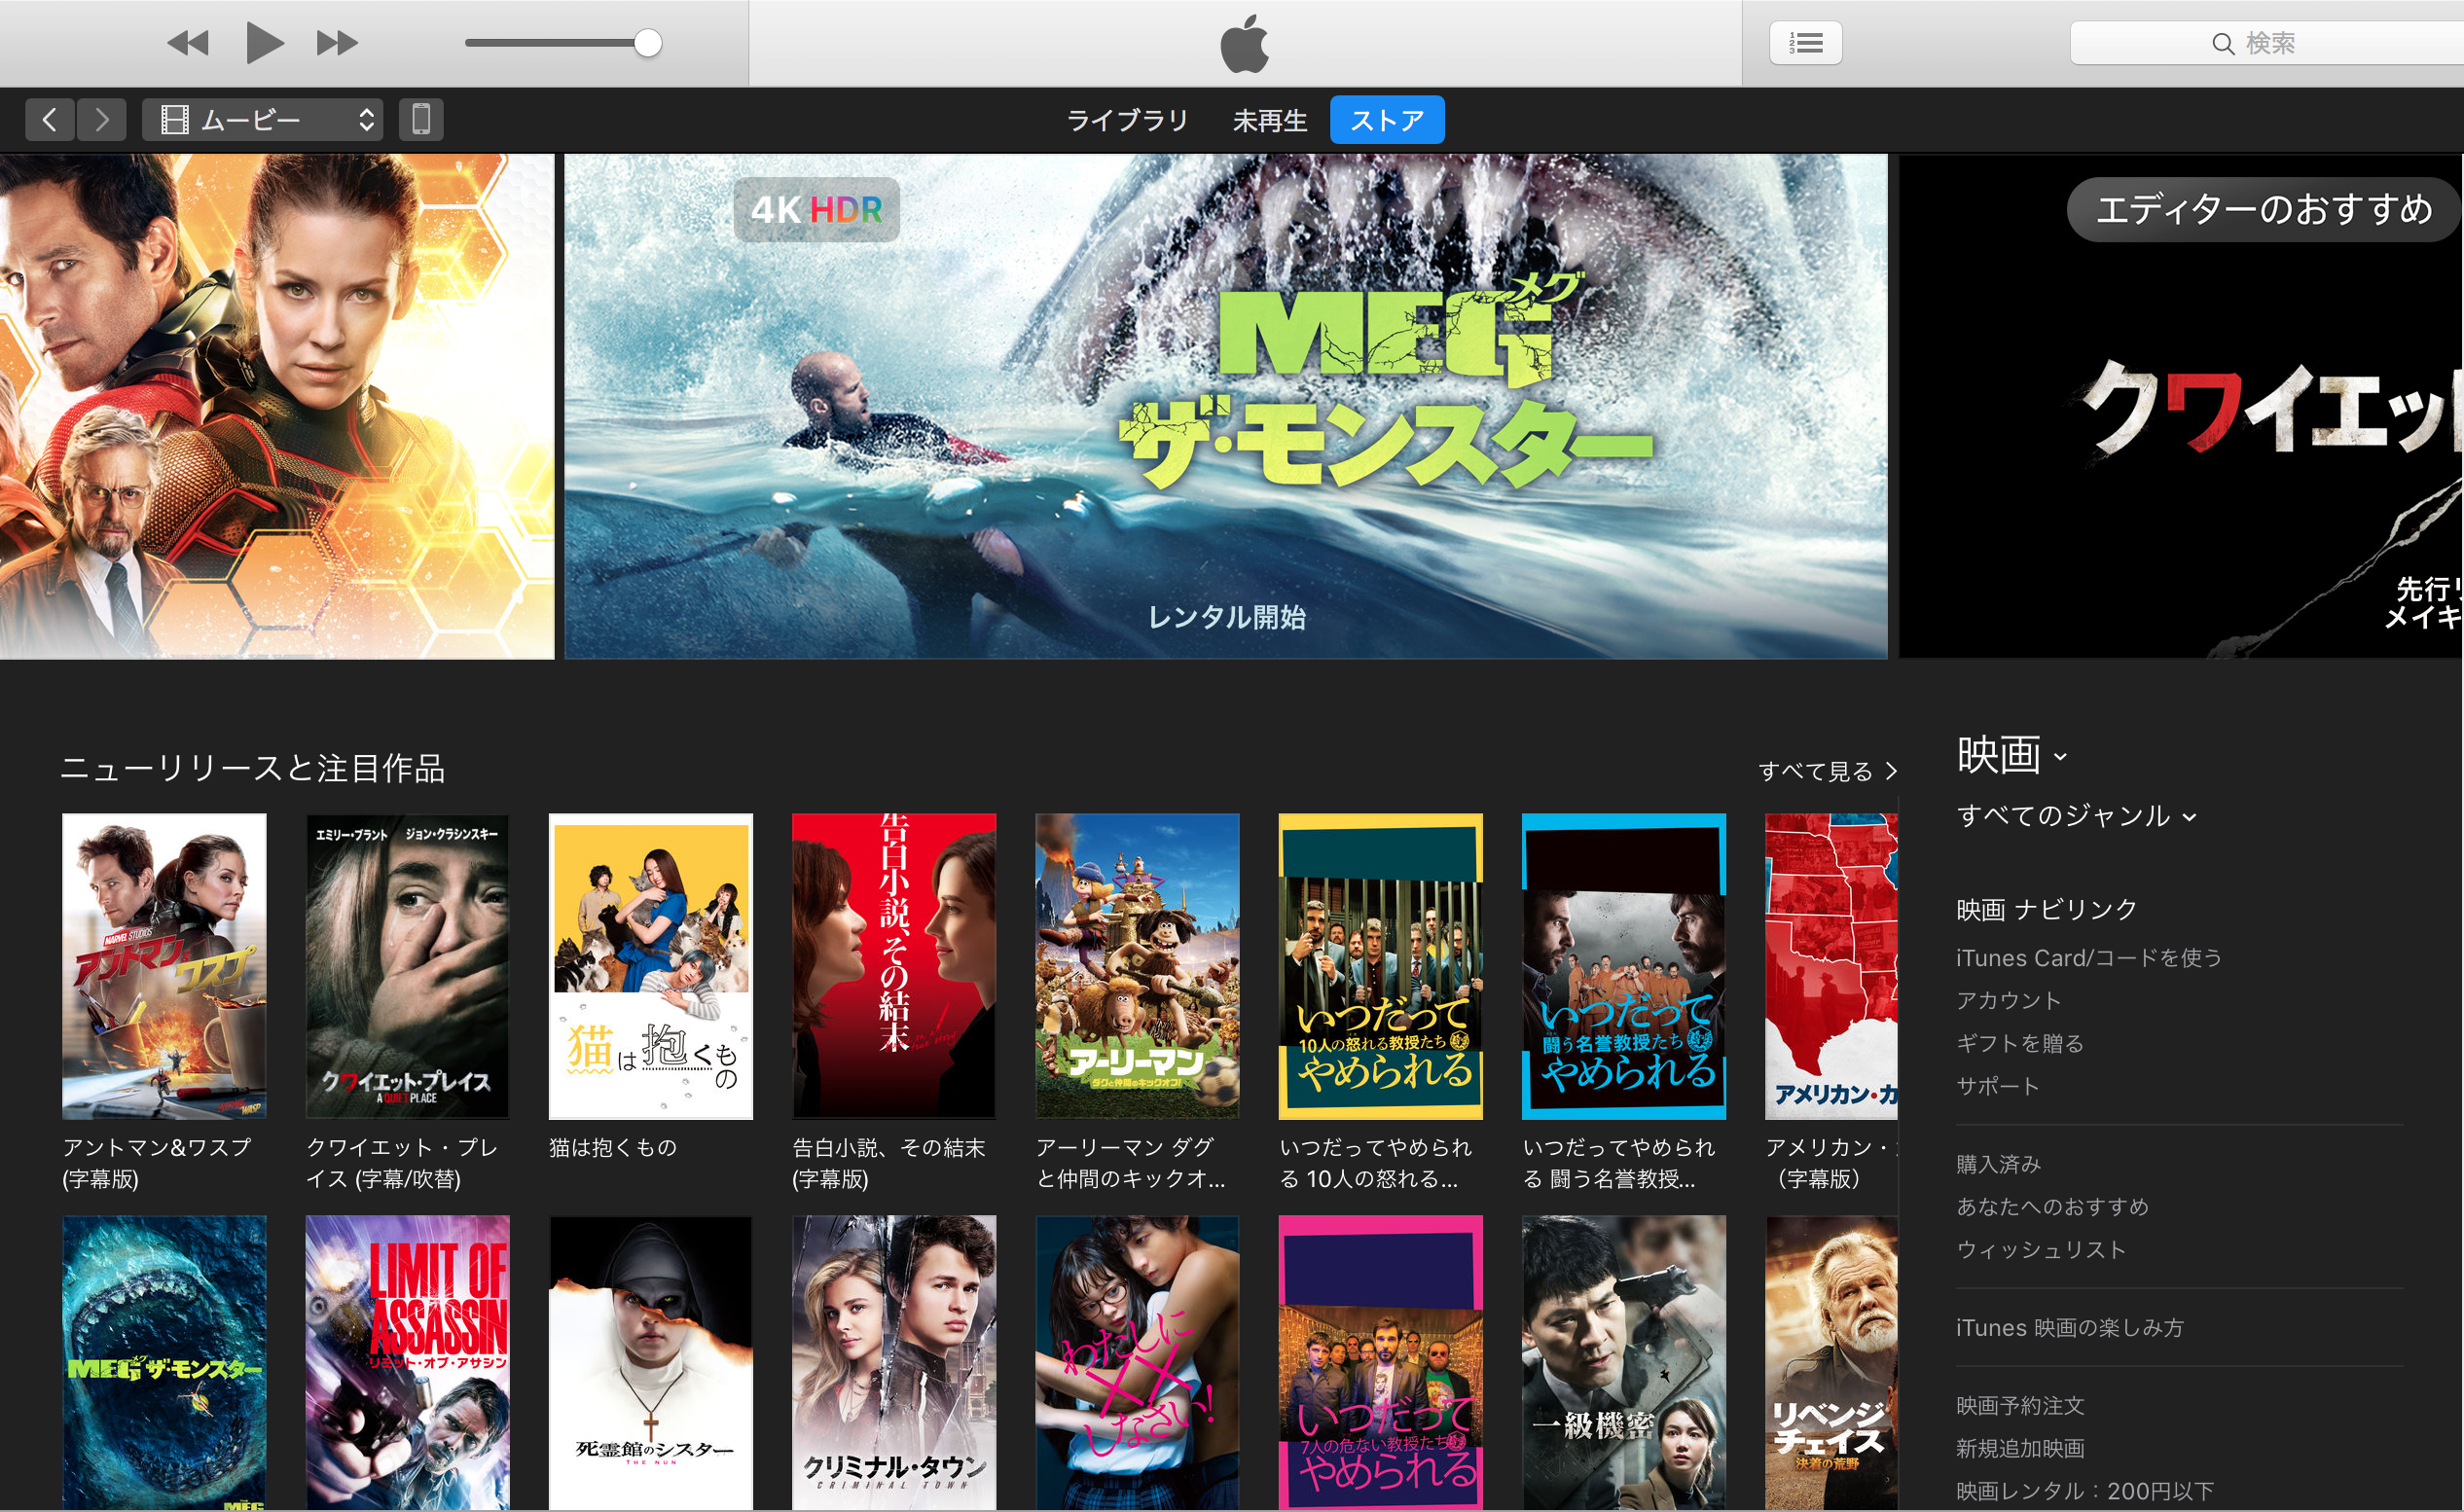 iTunes Store(Movie)